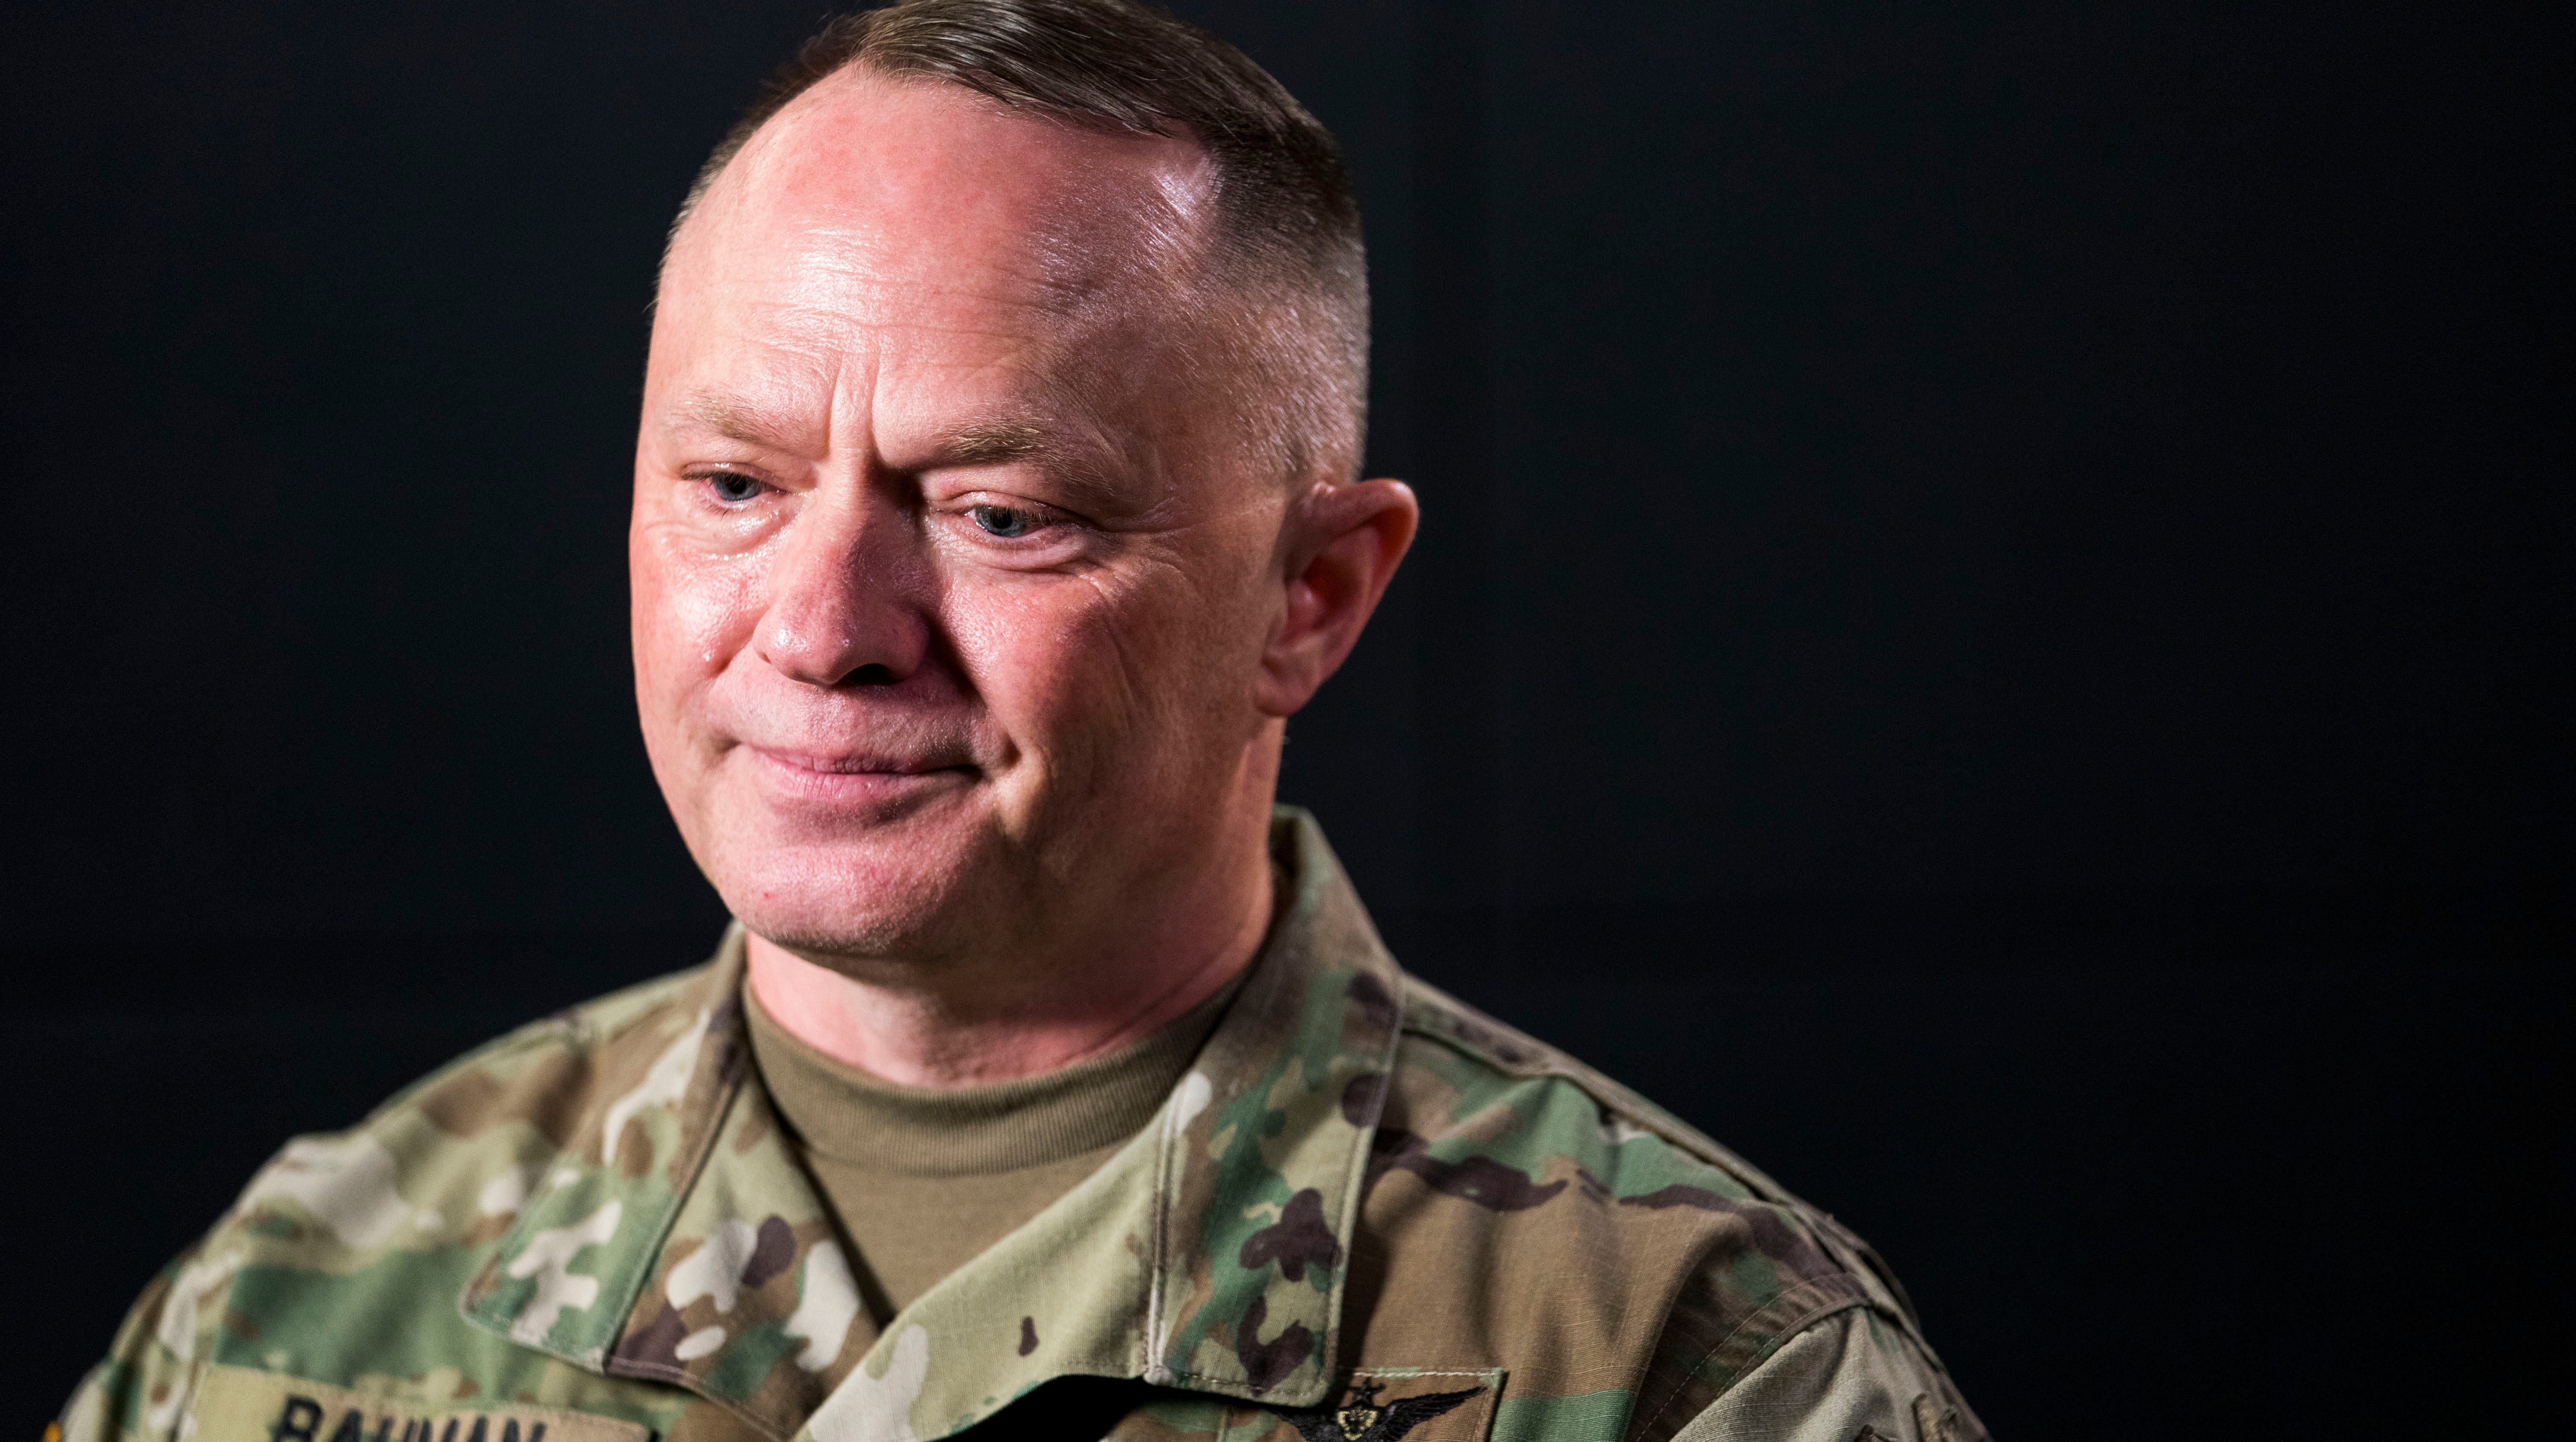 9cf94980 Military suicides: Service member tells story of survival